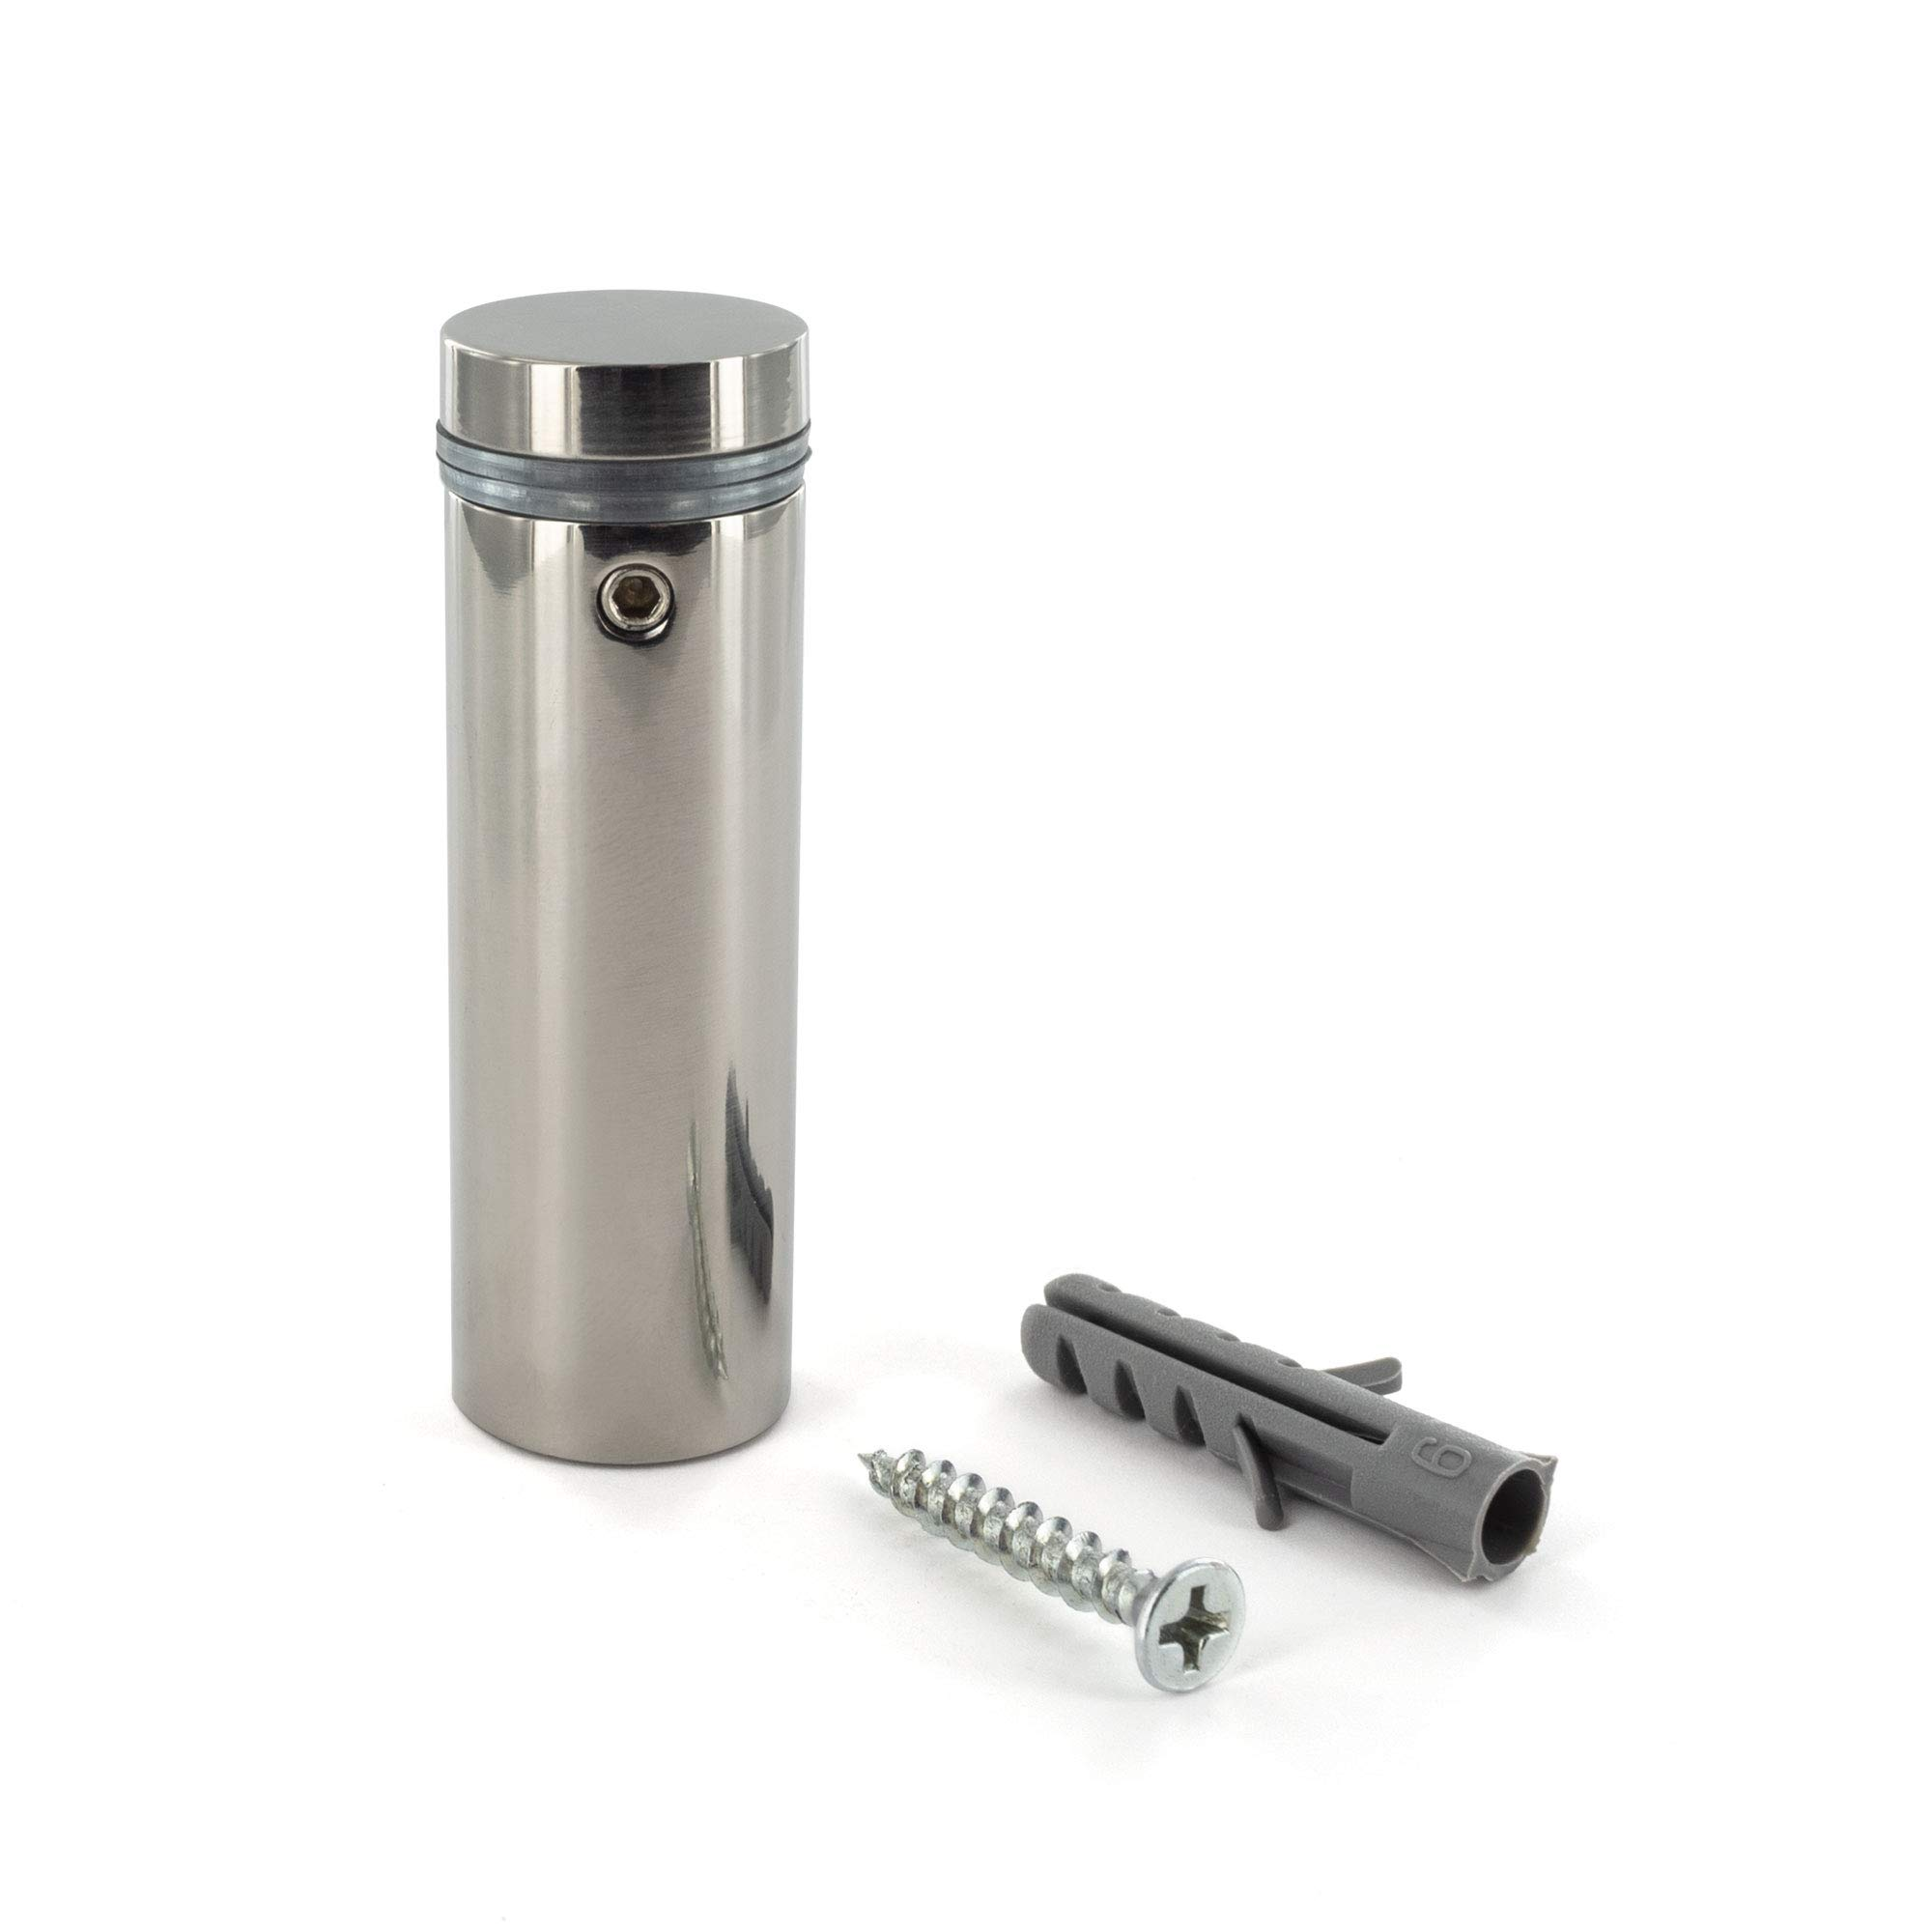 Sign Standoff 3/4'' Diameter x 2'' Barrel Length Polished Stainless Finish Eco Lock Series Tamper Proof Standoff Pack of 8 by Outwater by Outwater